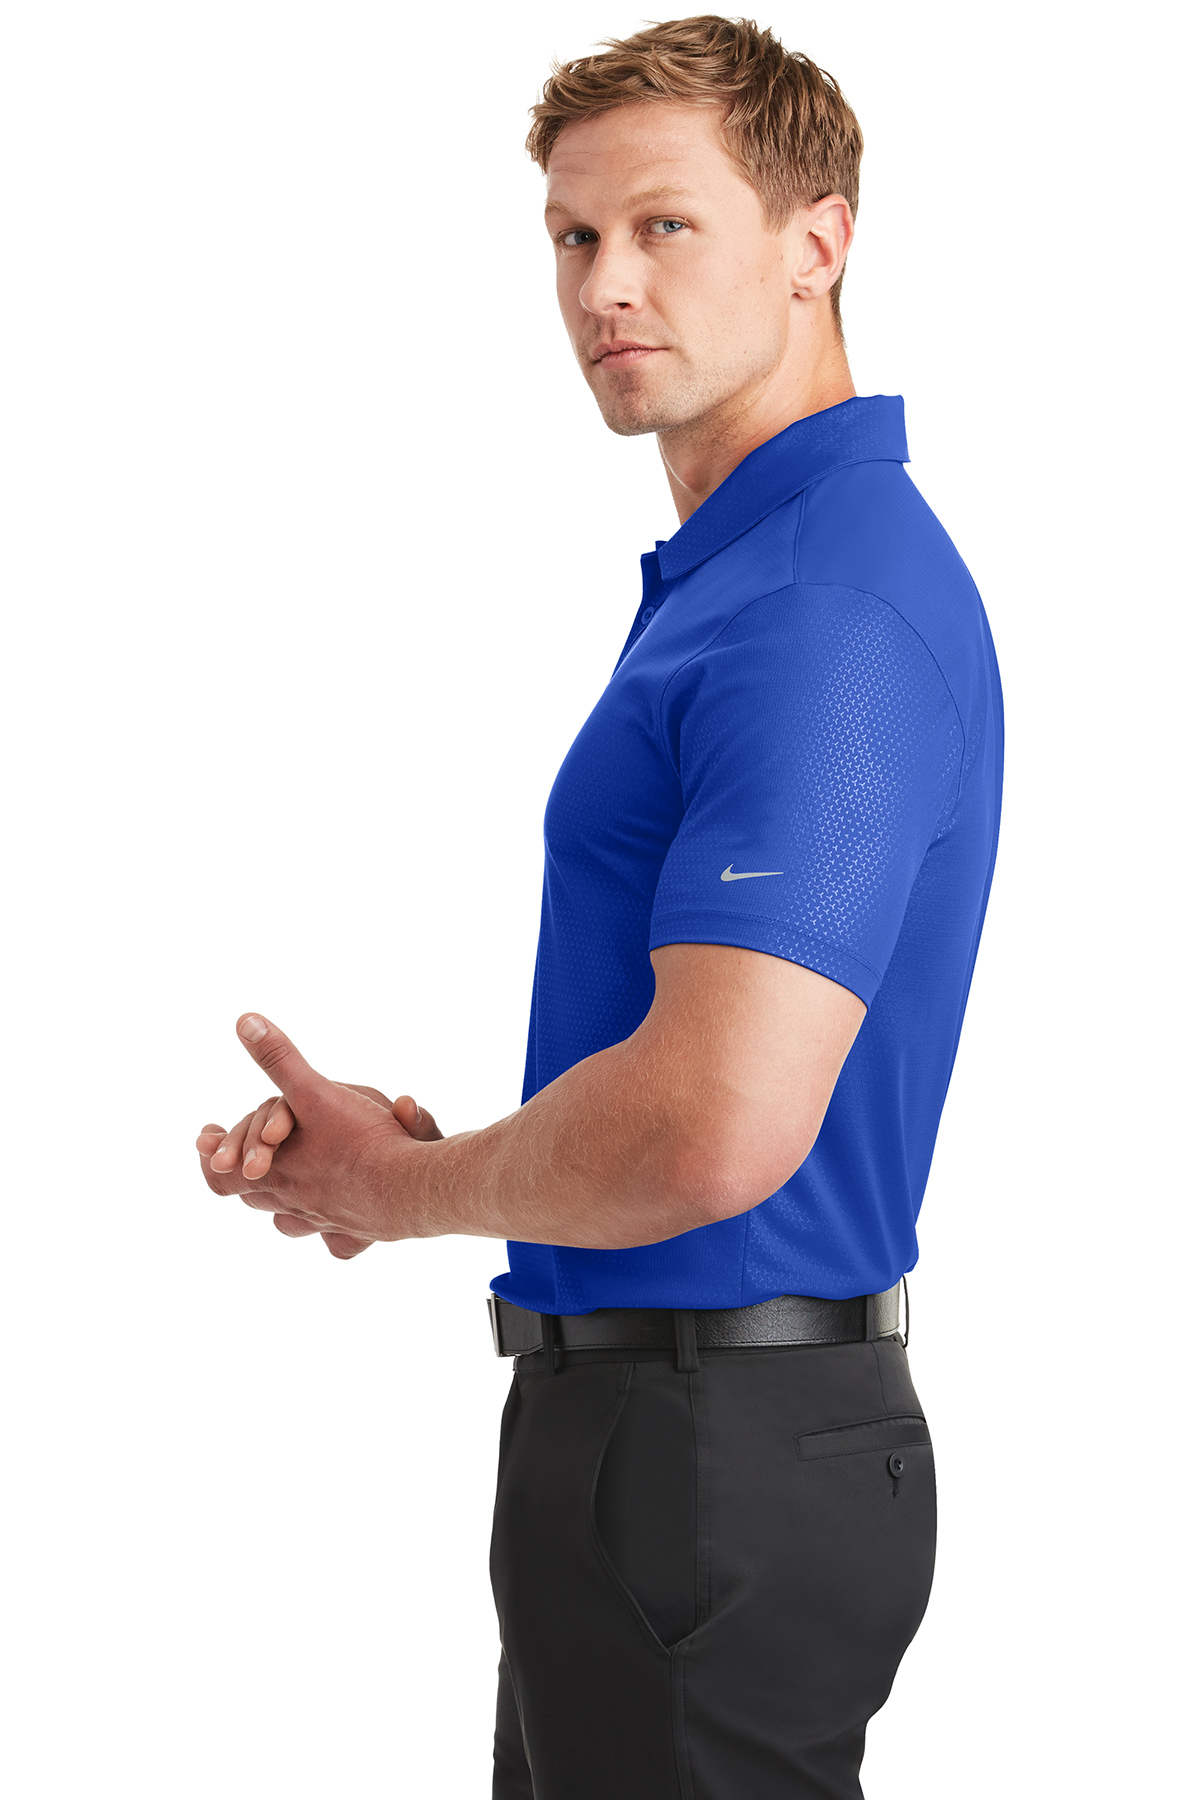 d25b9778 ... Nike Dri-FIT Embossed Tri-Blade Polo. A maximum of 8 logos have been  uploaded. Please remove a logo from My Logos to continue